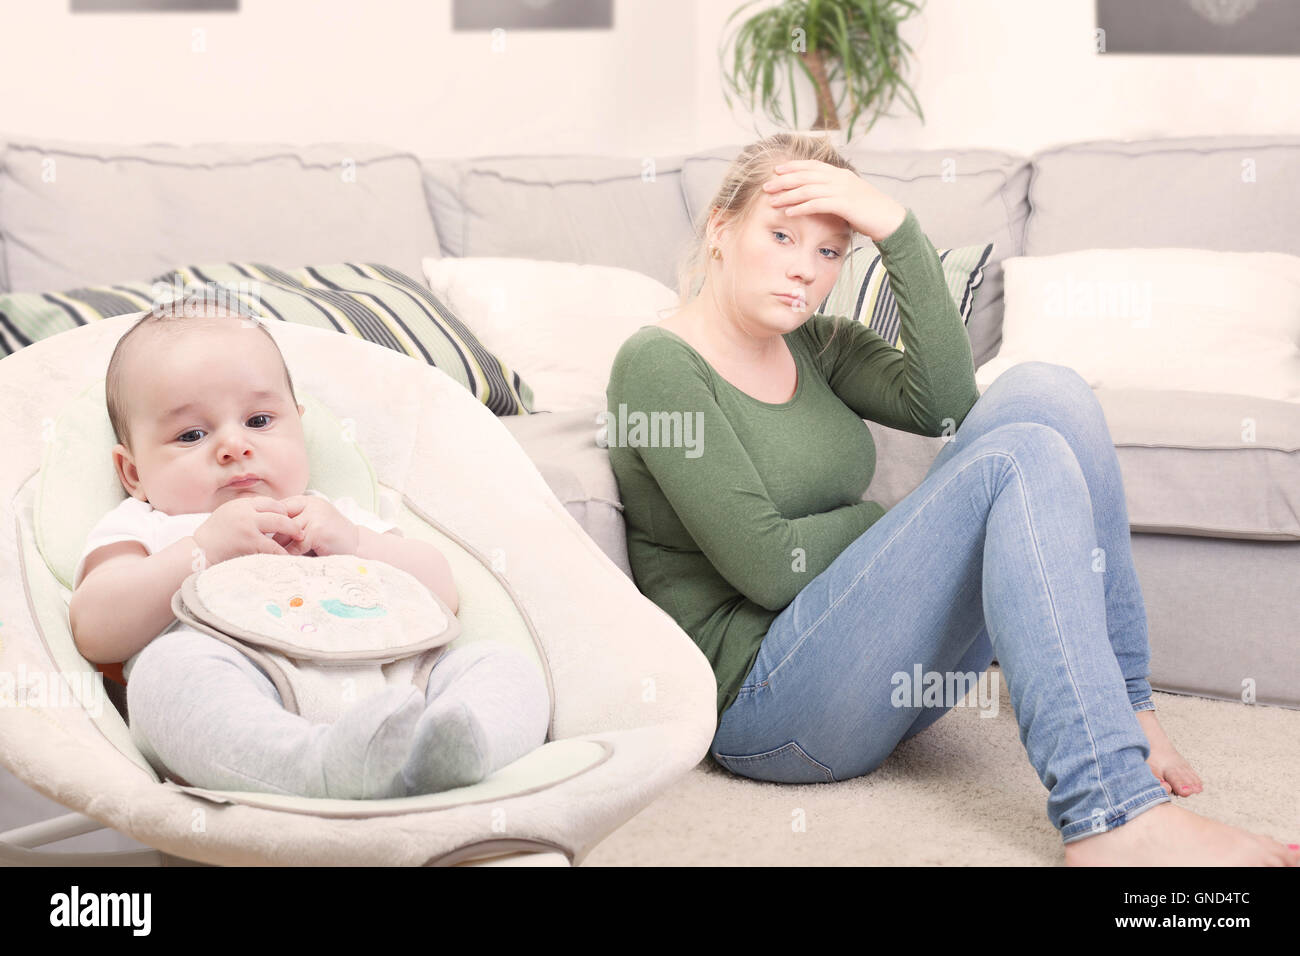 Young new mother suffering from postpartum depression - Stock Image